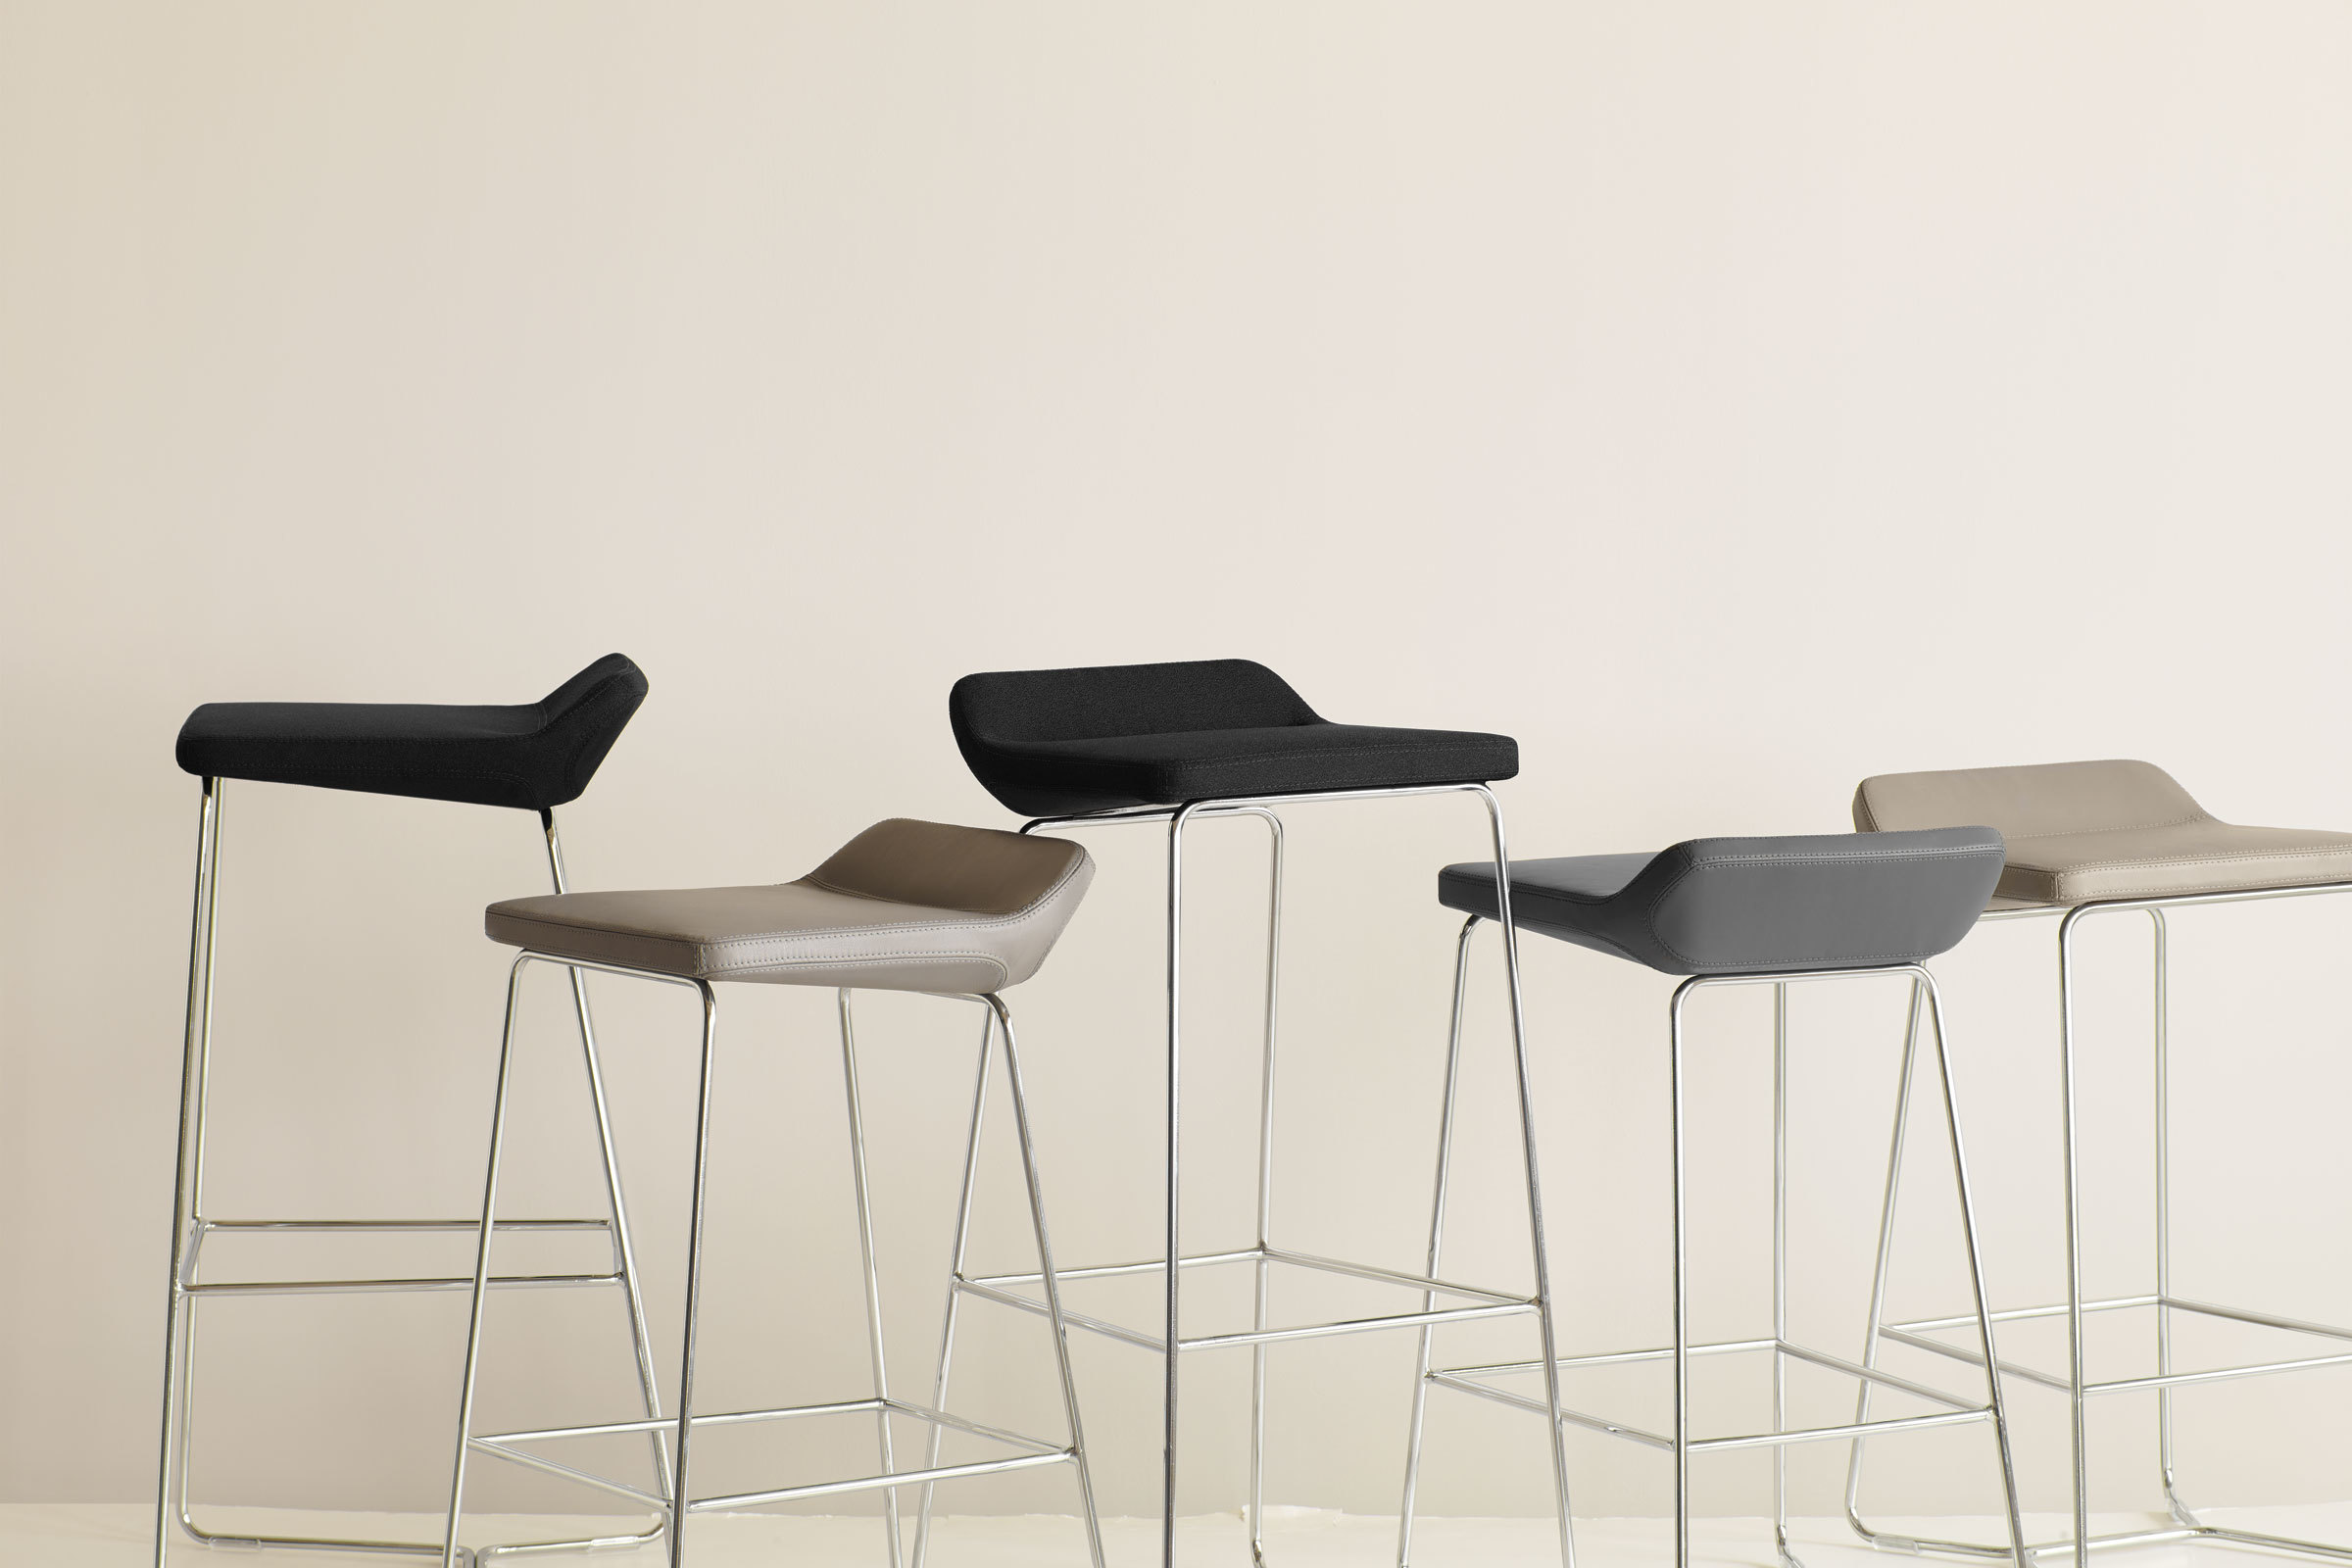 Keilhauer Cahoots Bar Stool Group